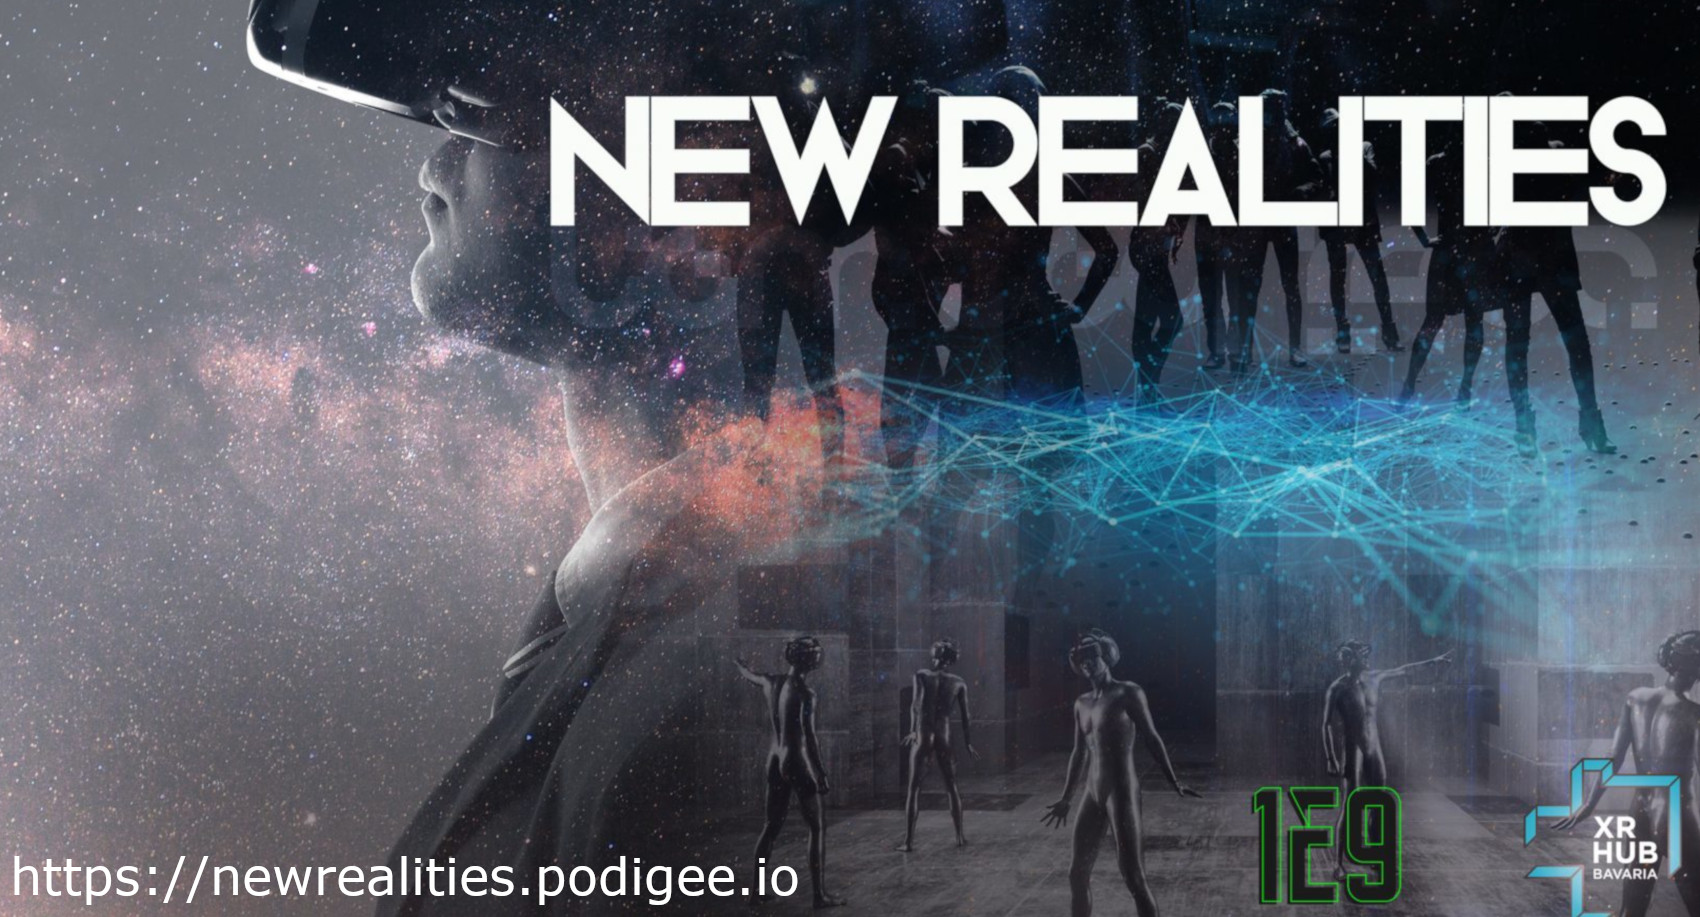 New Realities Podcast: XR in der Bildung